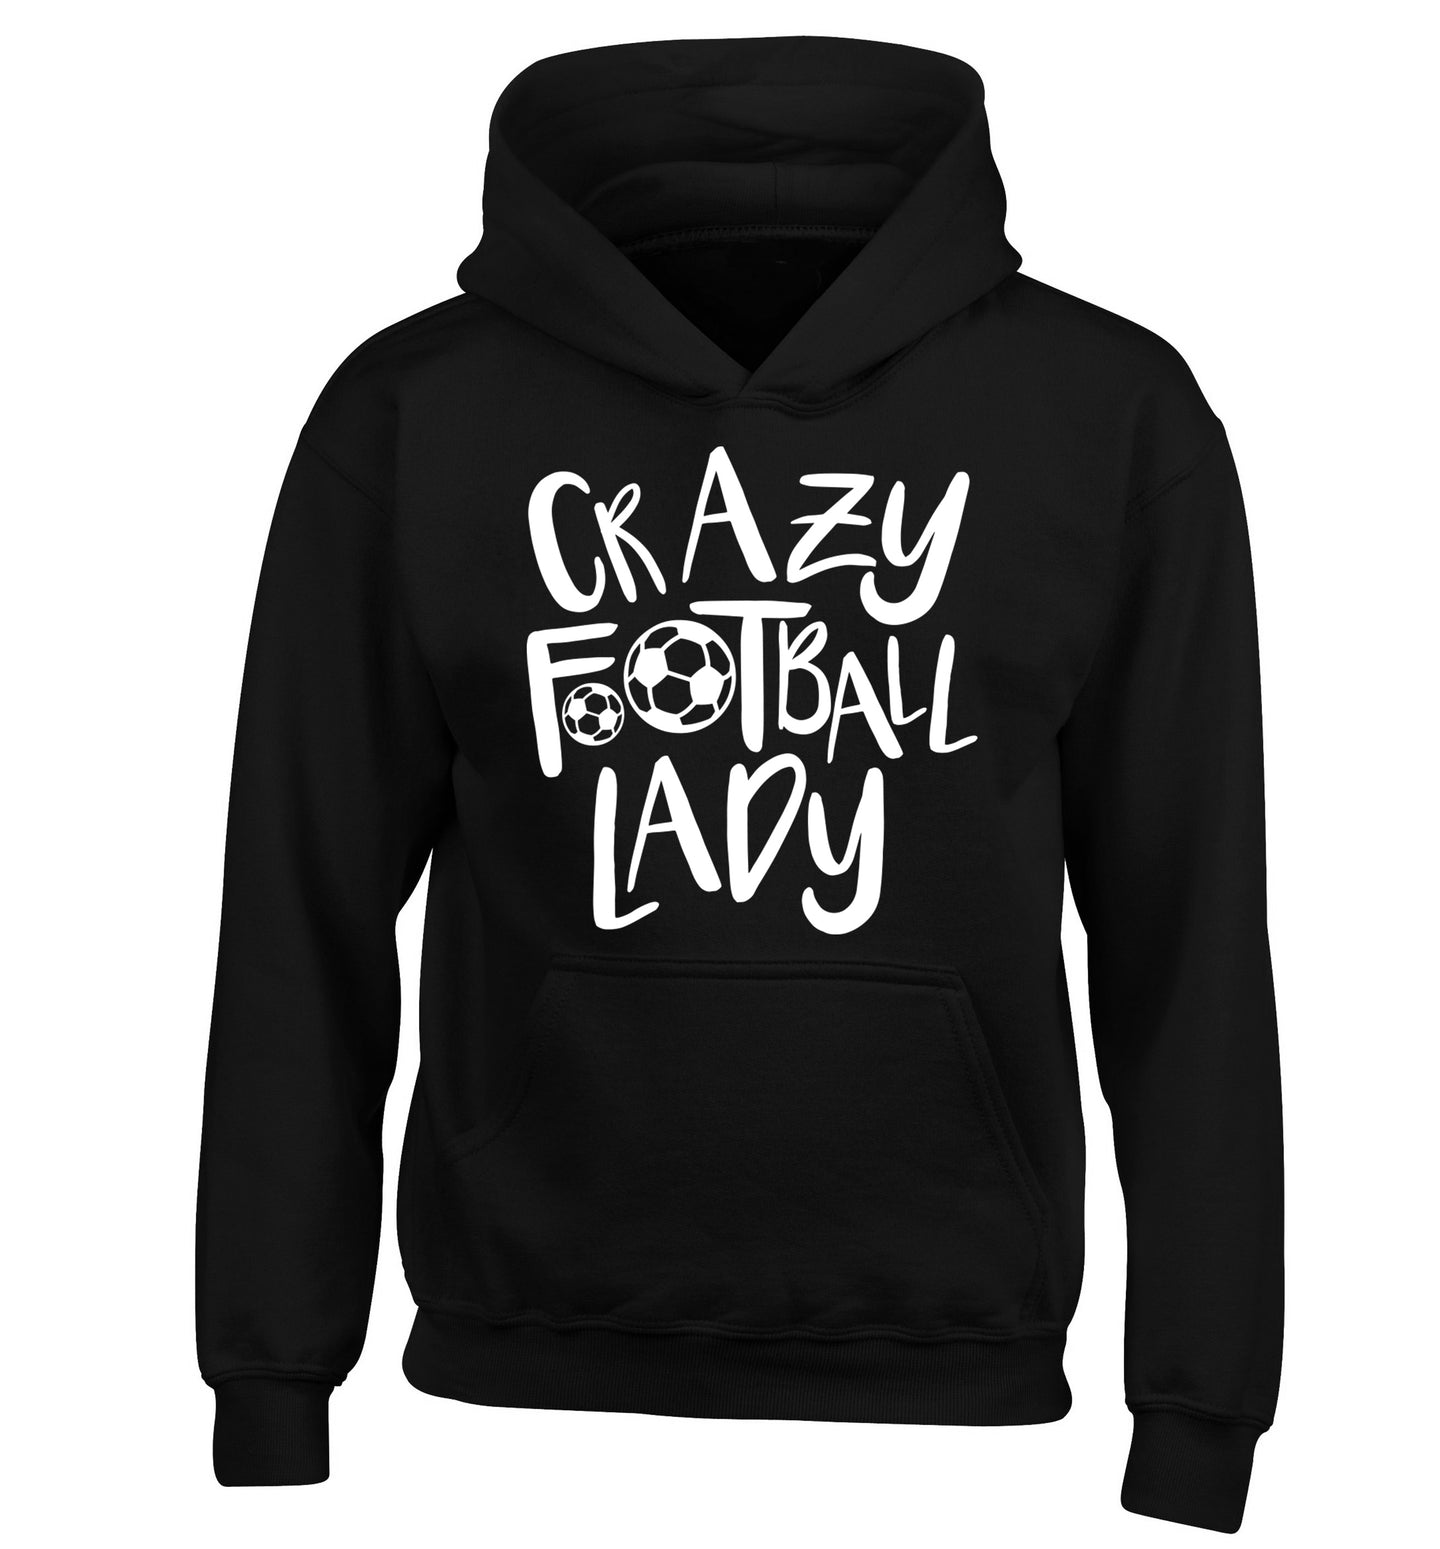 Crazy football lady children's black hoodie 12-14 Years